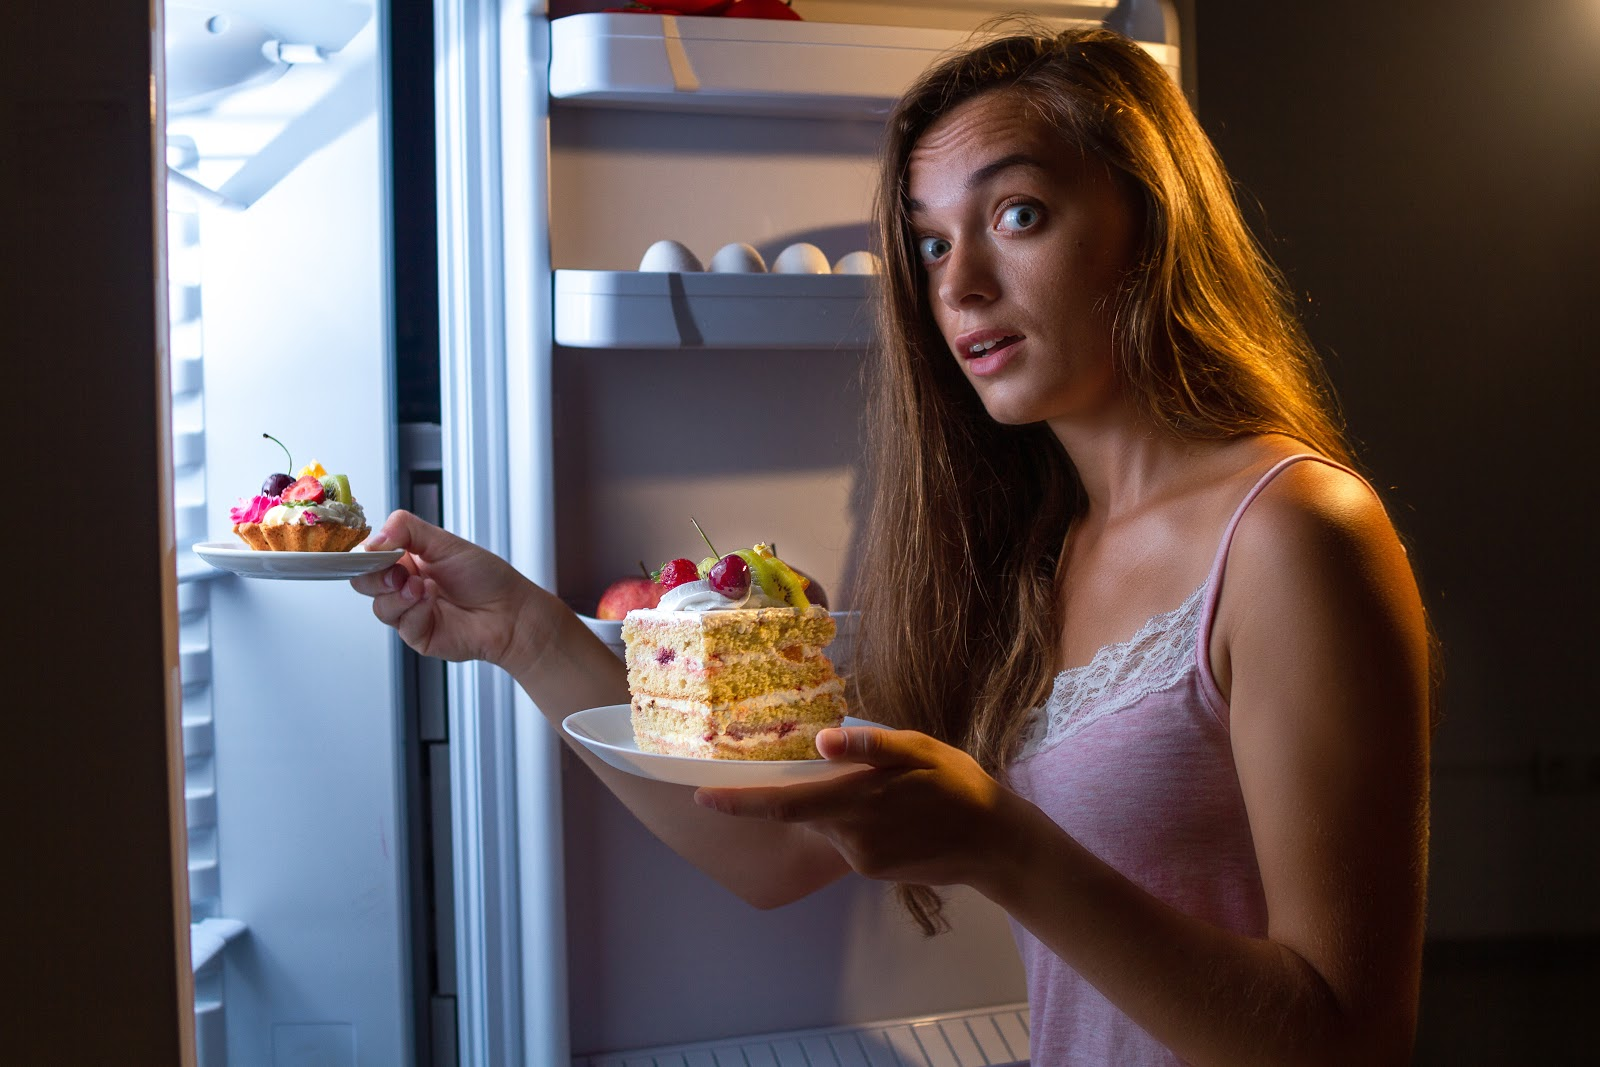 What foods should be avoided with SIBO: Woman removes desserts from fridge at night